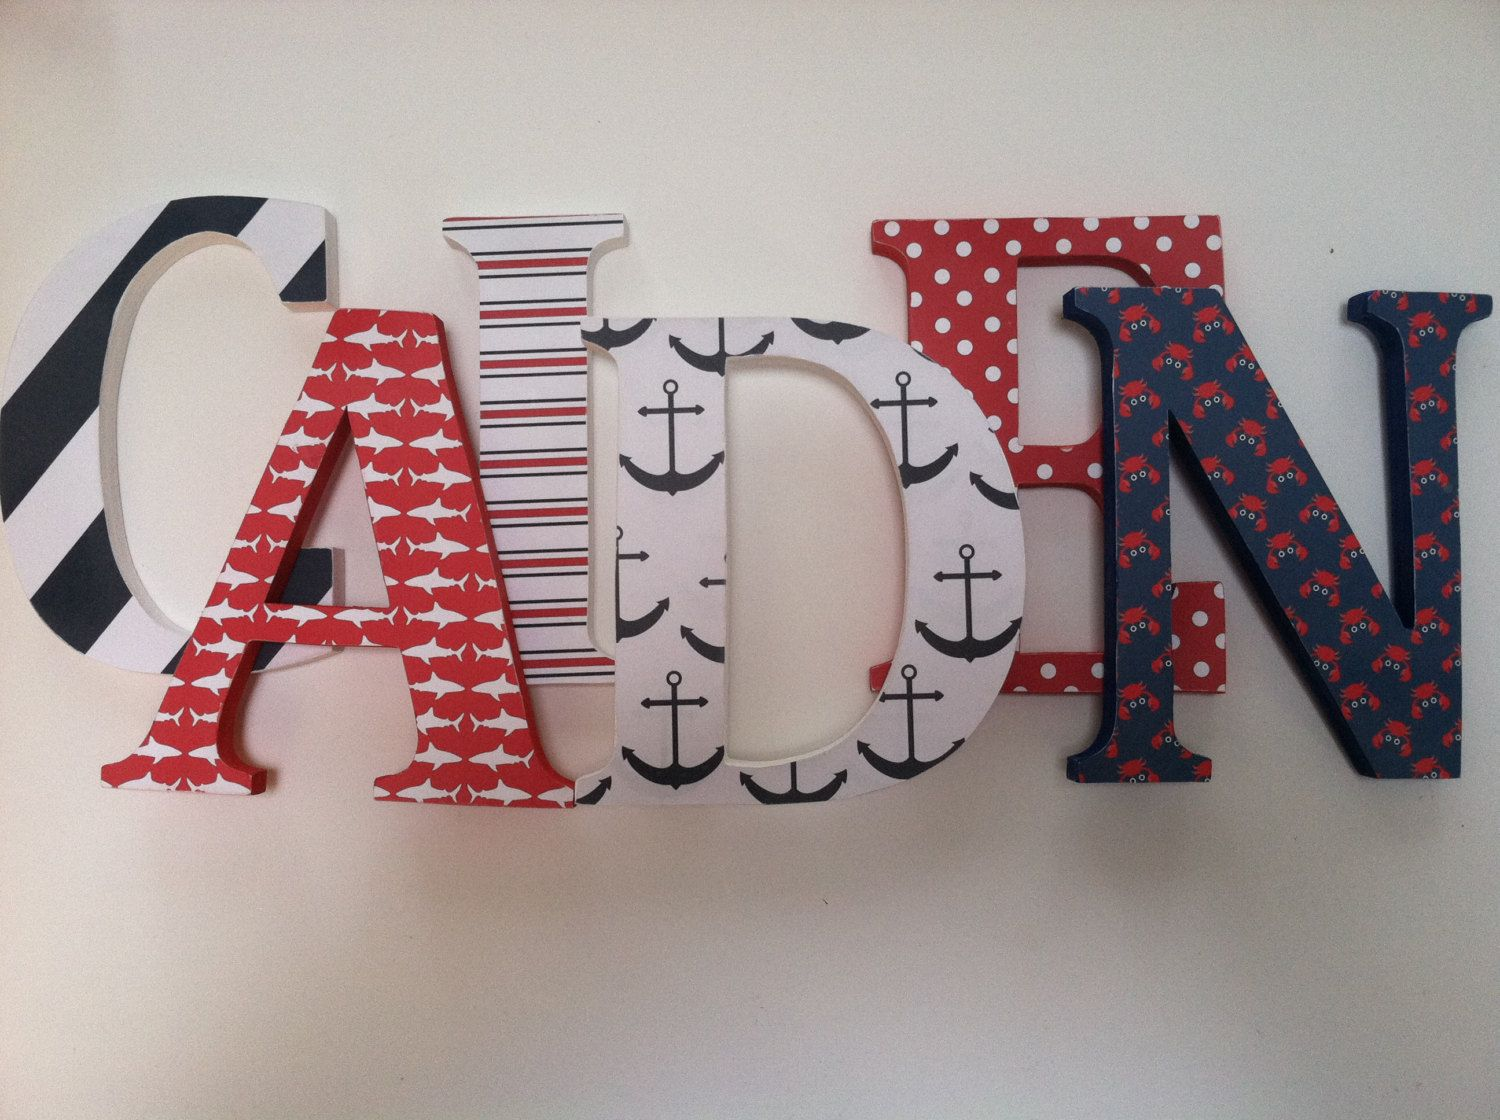 Nautical themed wooden letters for nursery spelling out your